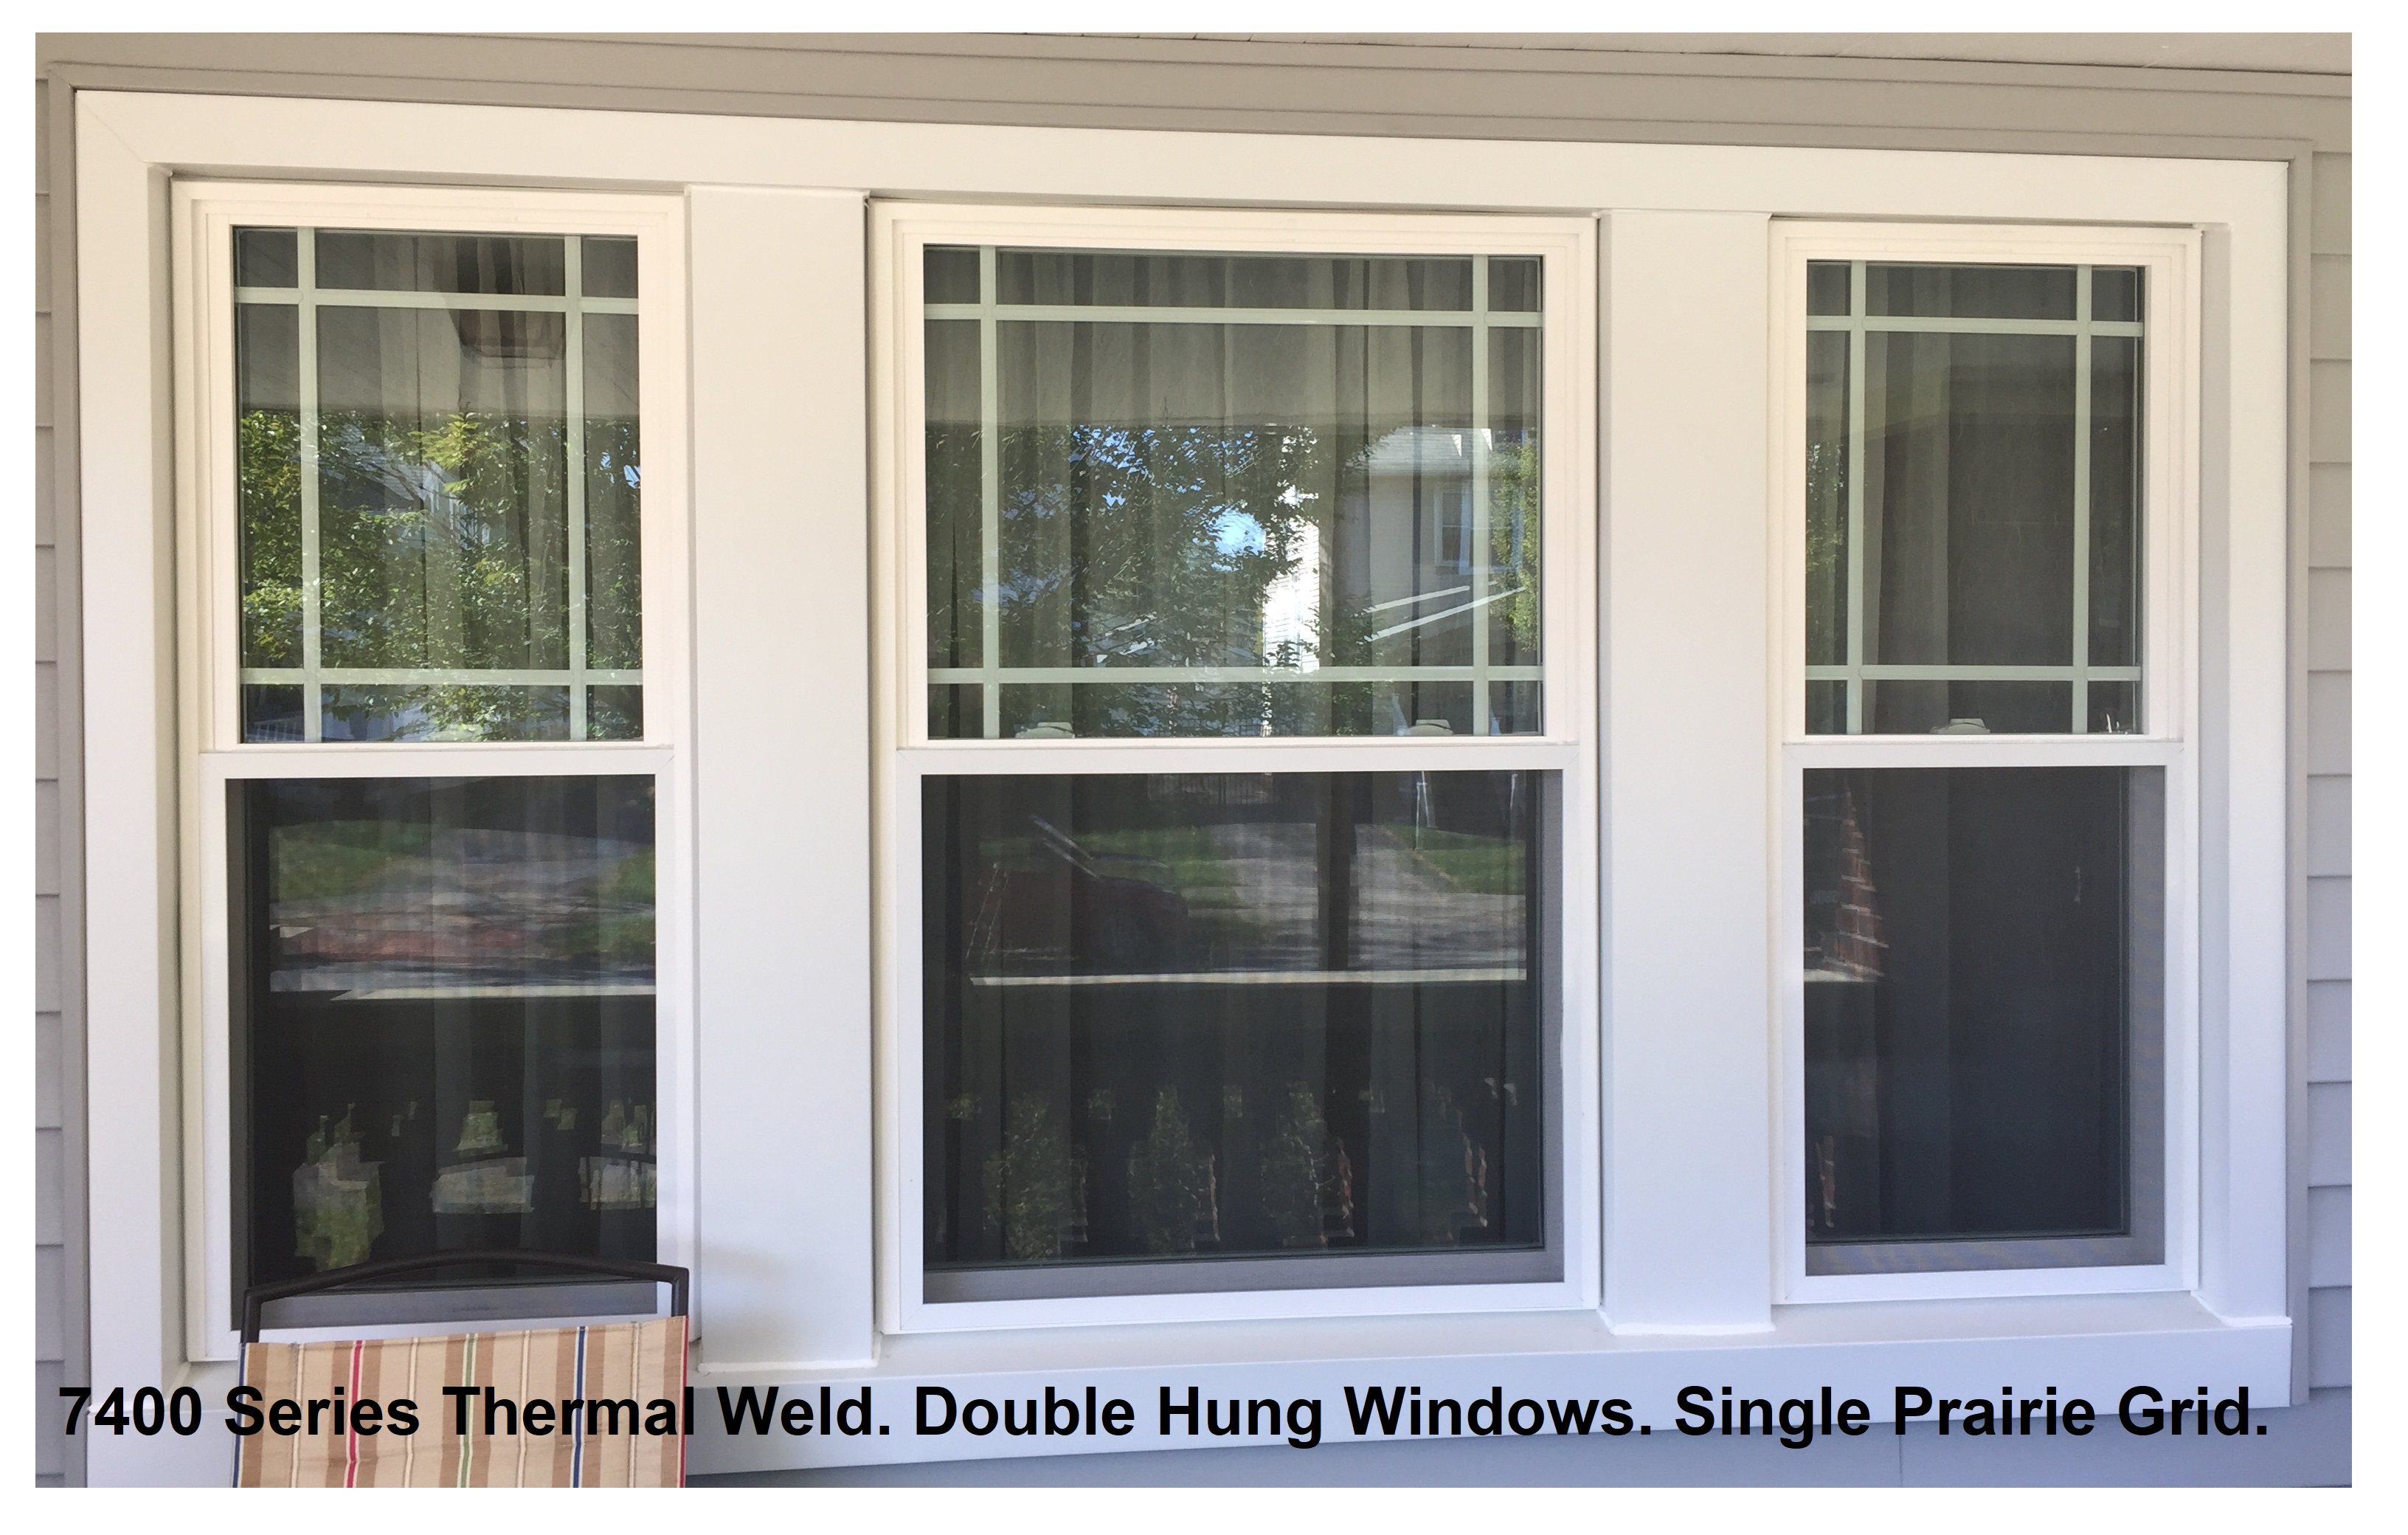 Lakewood Replacement Windows Double Hung With Prairie